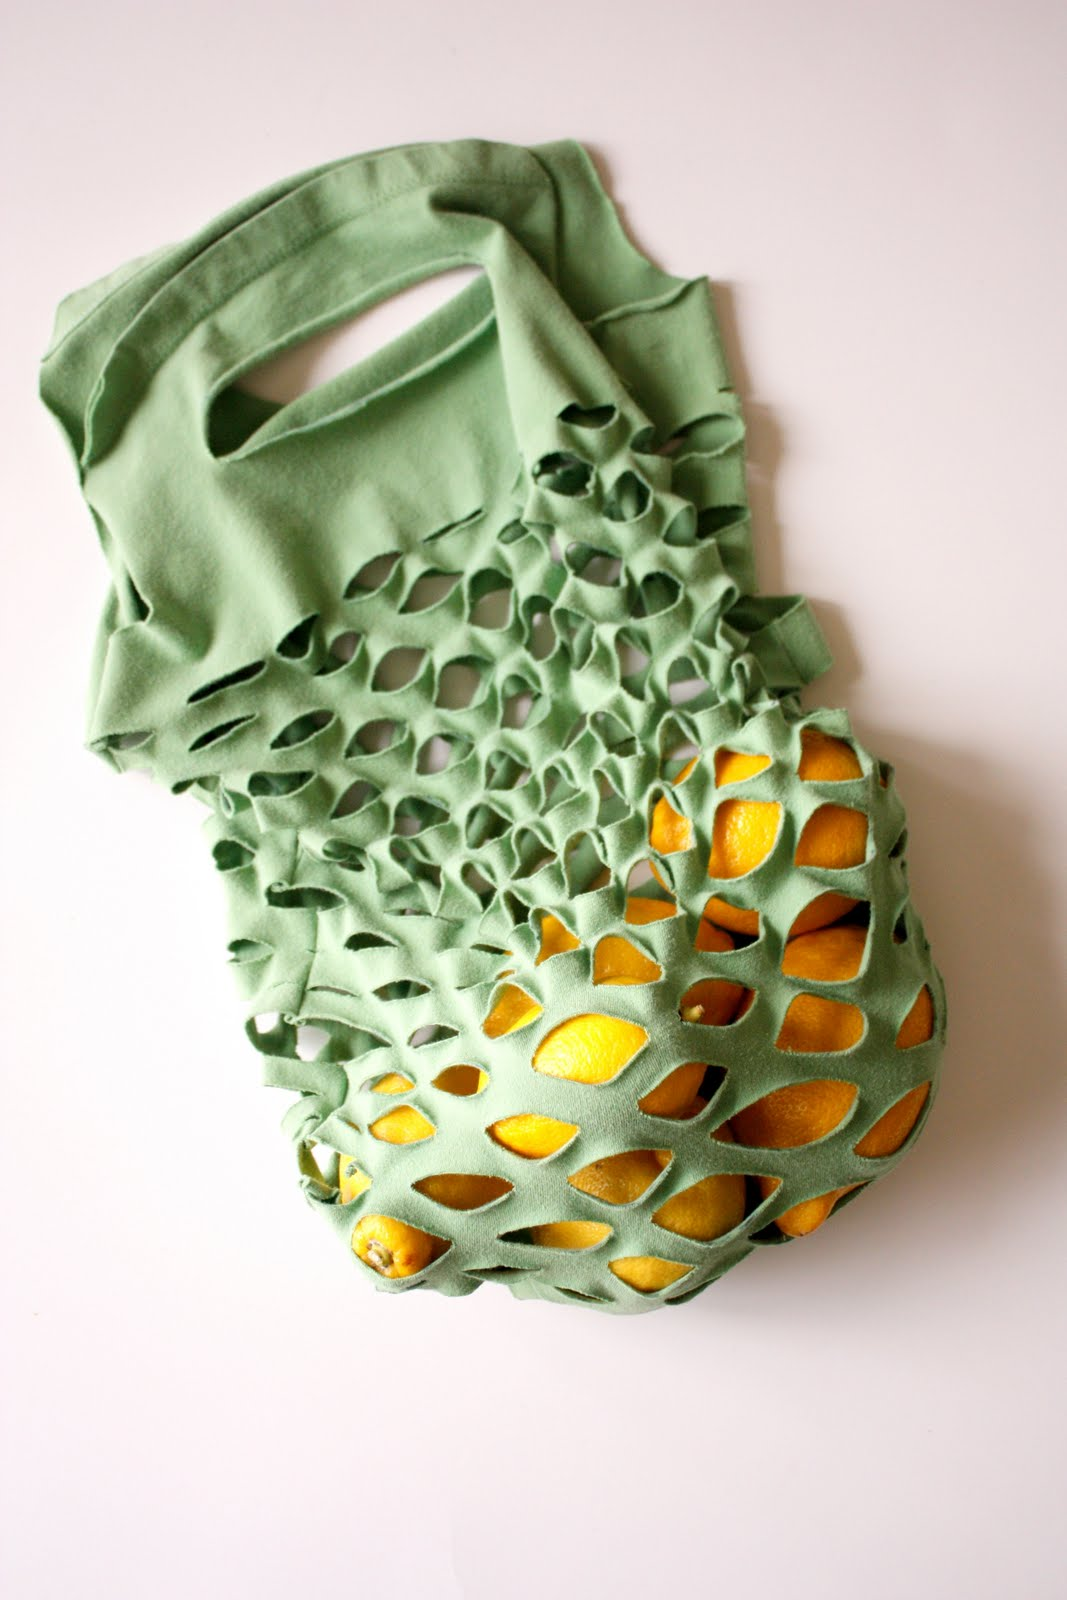 Simple DIY produce bag from a t-shirt.